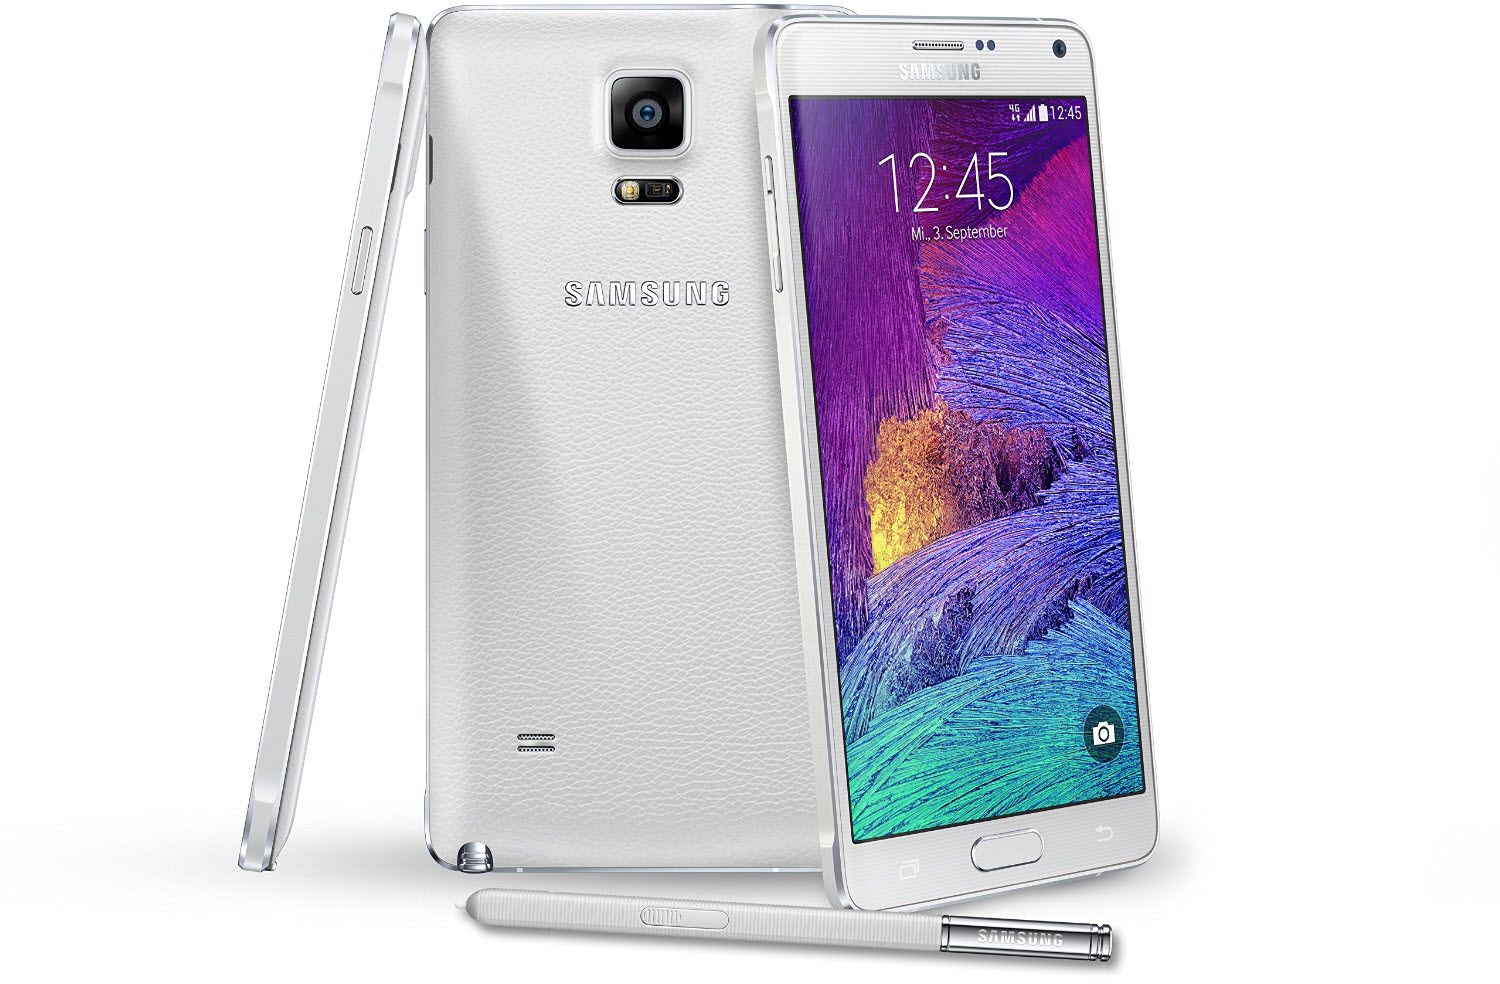 How to root Sprint Galaxy Note 4 SM-N910P LTE in Android 5 0